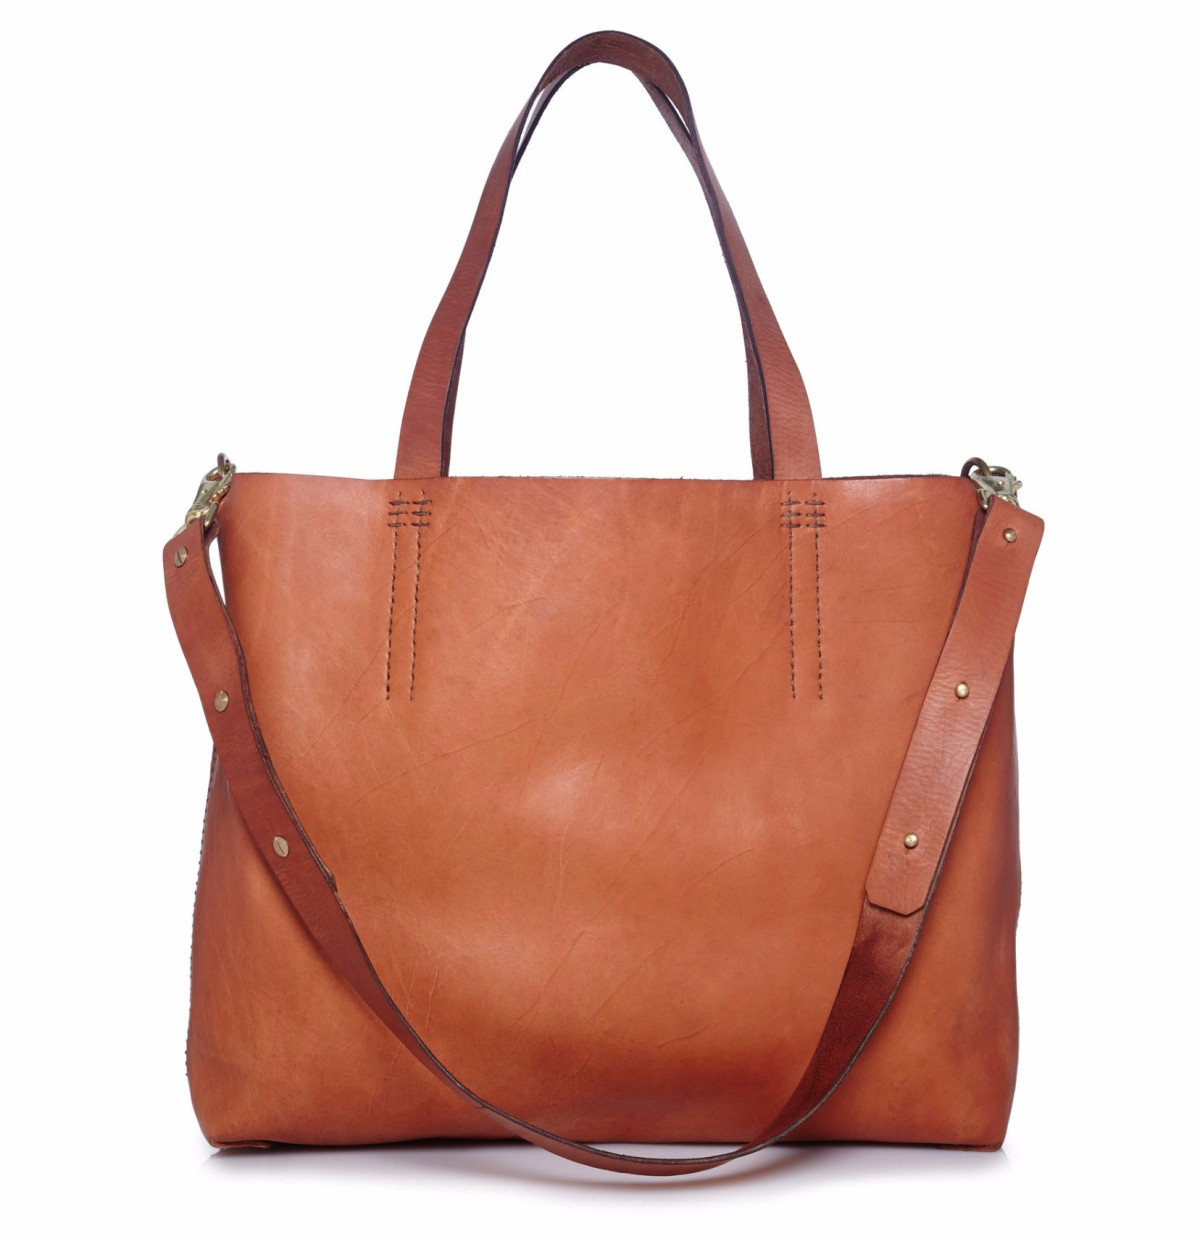 SIMPLE_TOTE_TAN_STRAP_9938765e-699f-4314-b188-6cd43f5659c4